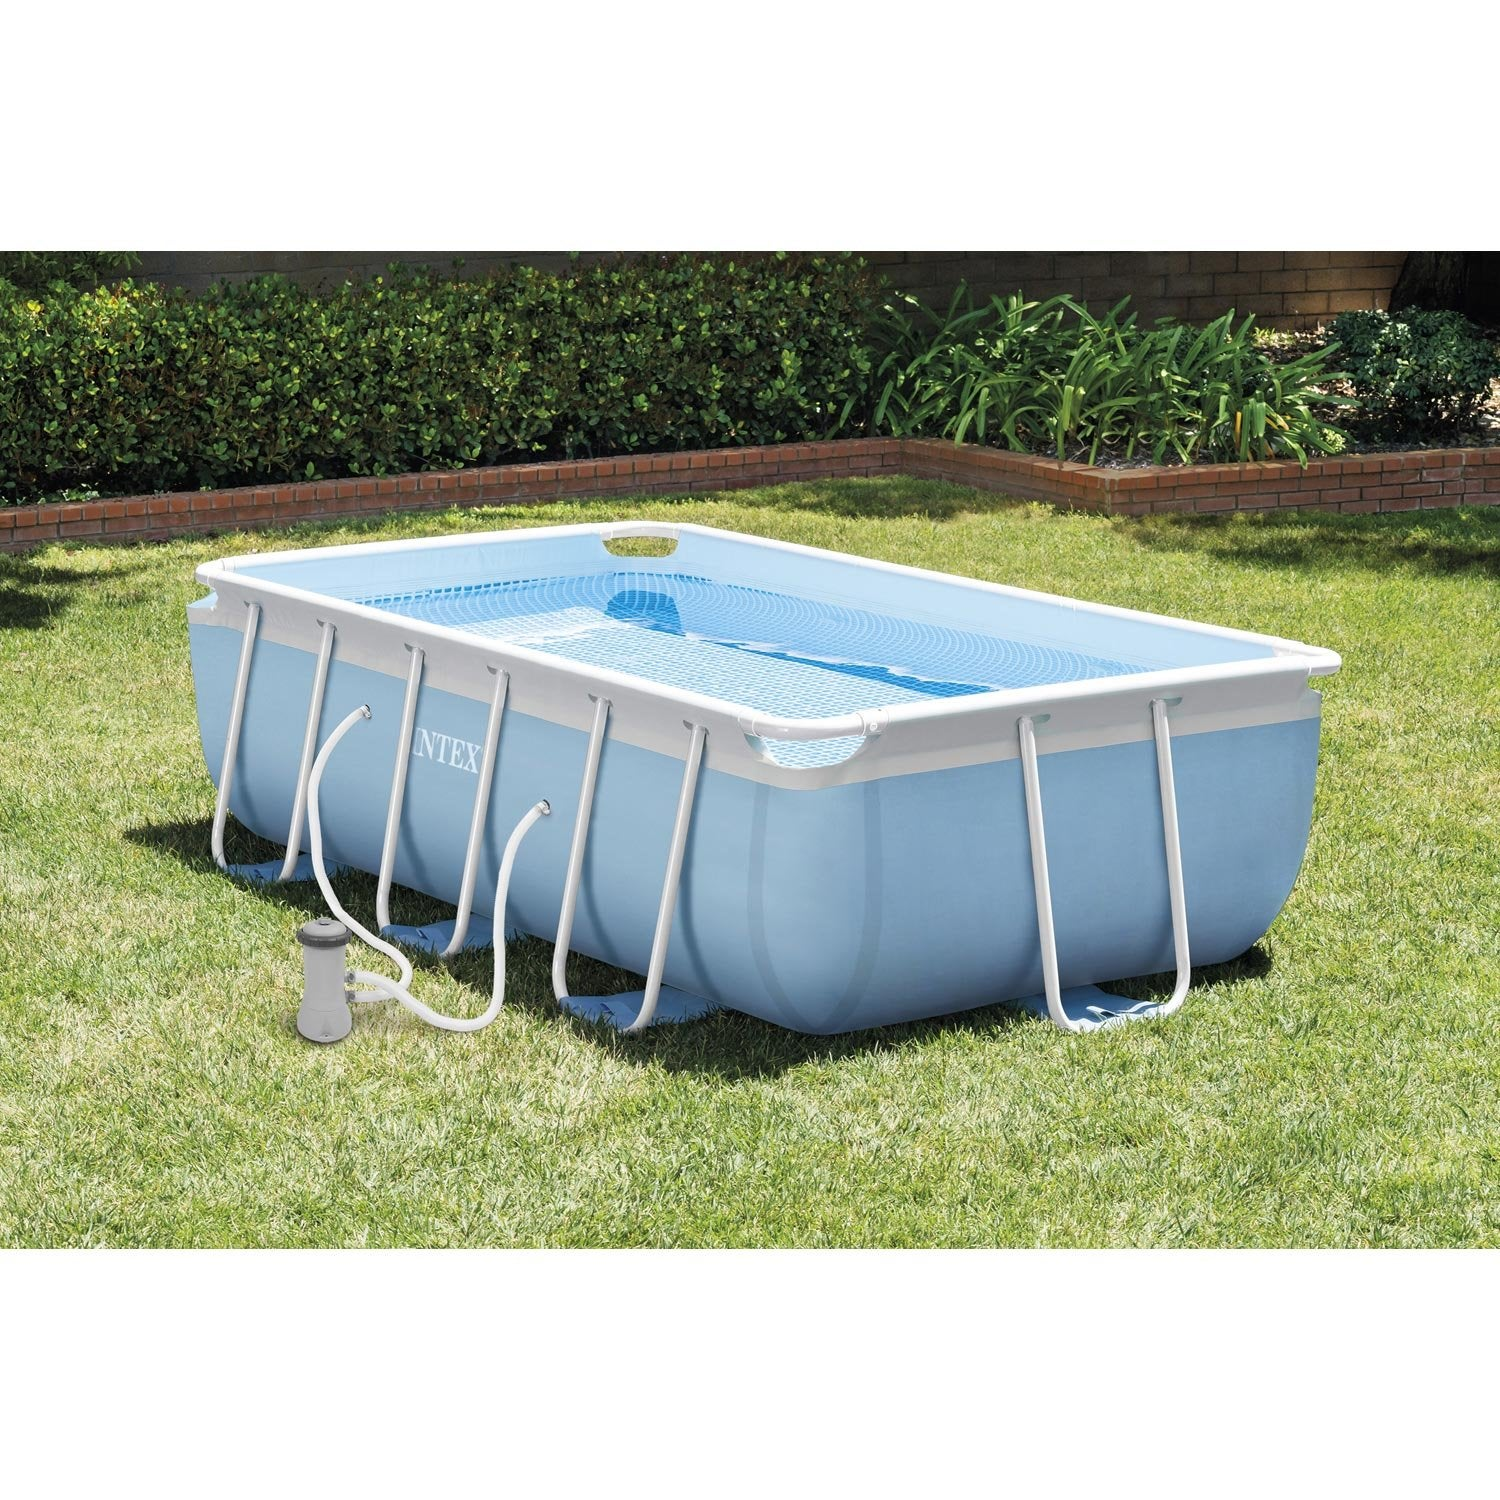 Piscine hors sol autoportante tubulaire intex l 3 4 x l 2 for Piscine intex hors sol rectangulaire